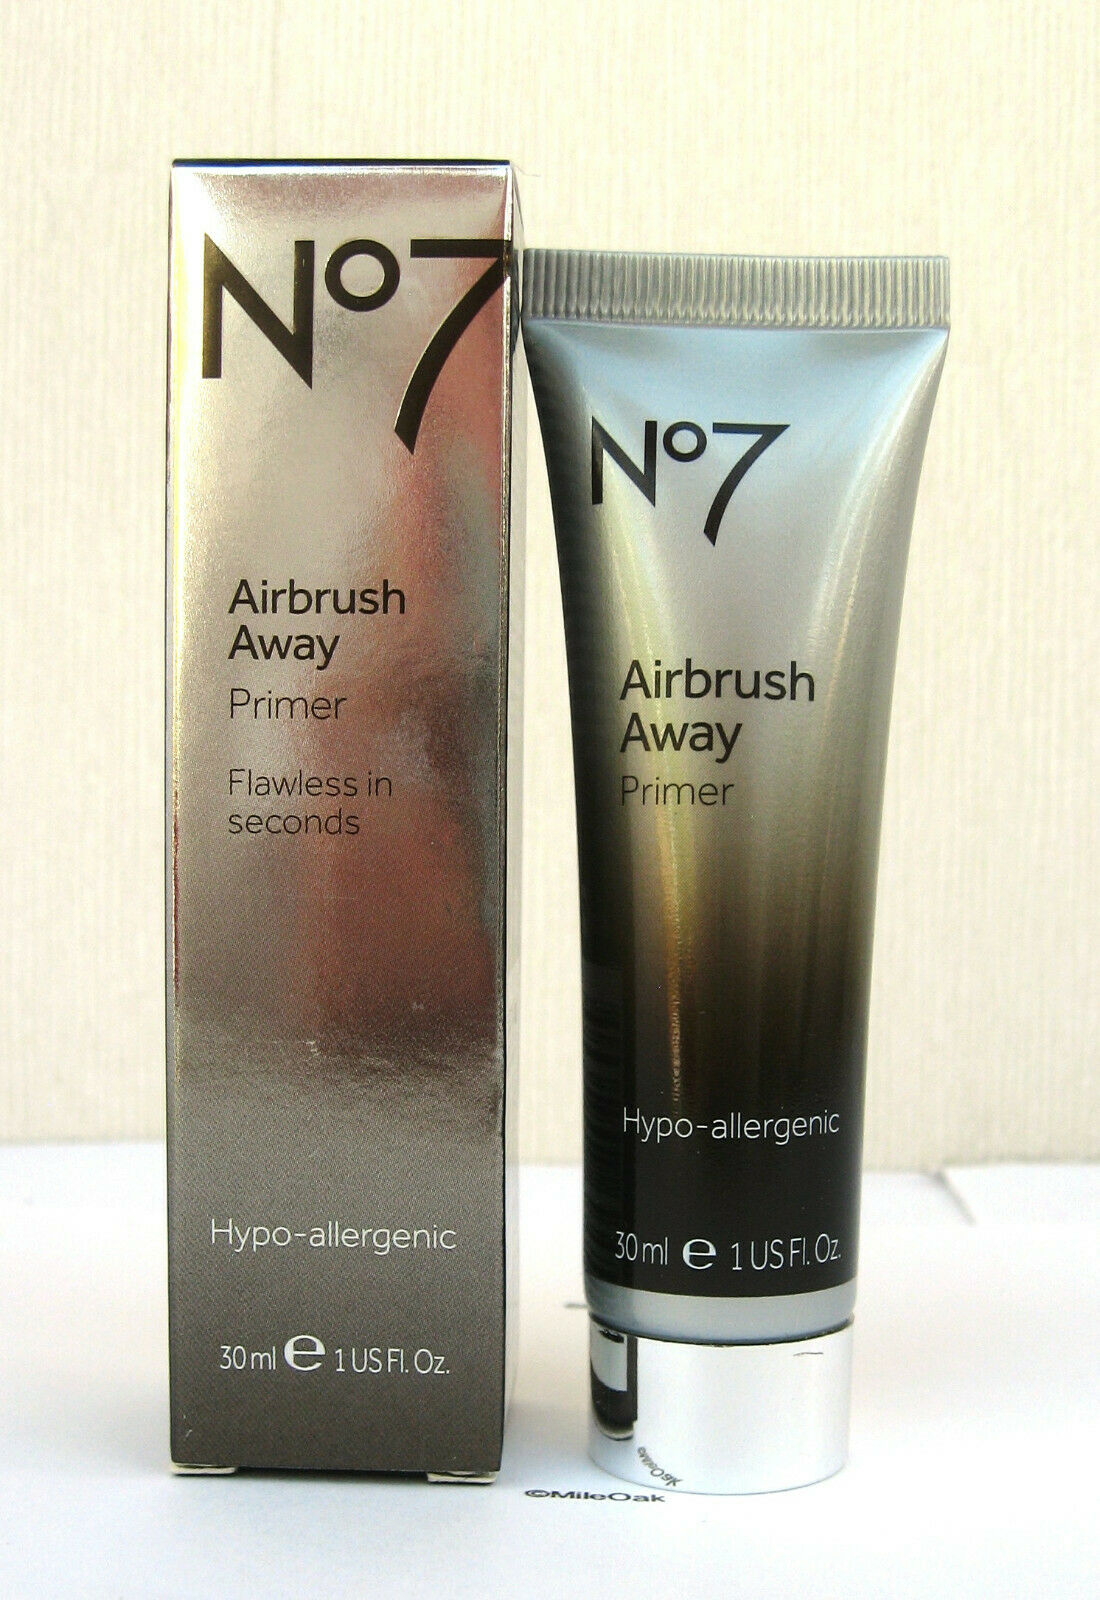 3b09868ac11a5 No7 Airbrush Away Primer Flawless in Seconds 30ml Boxed for sale ...